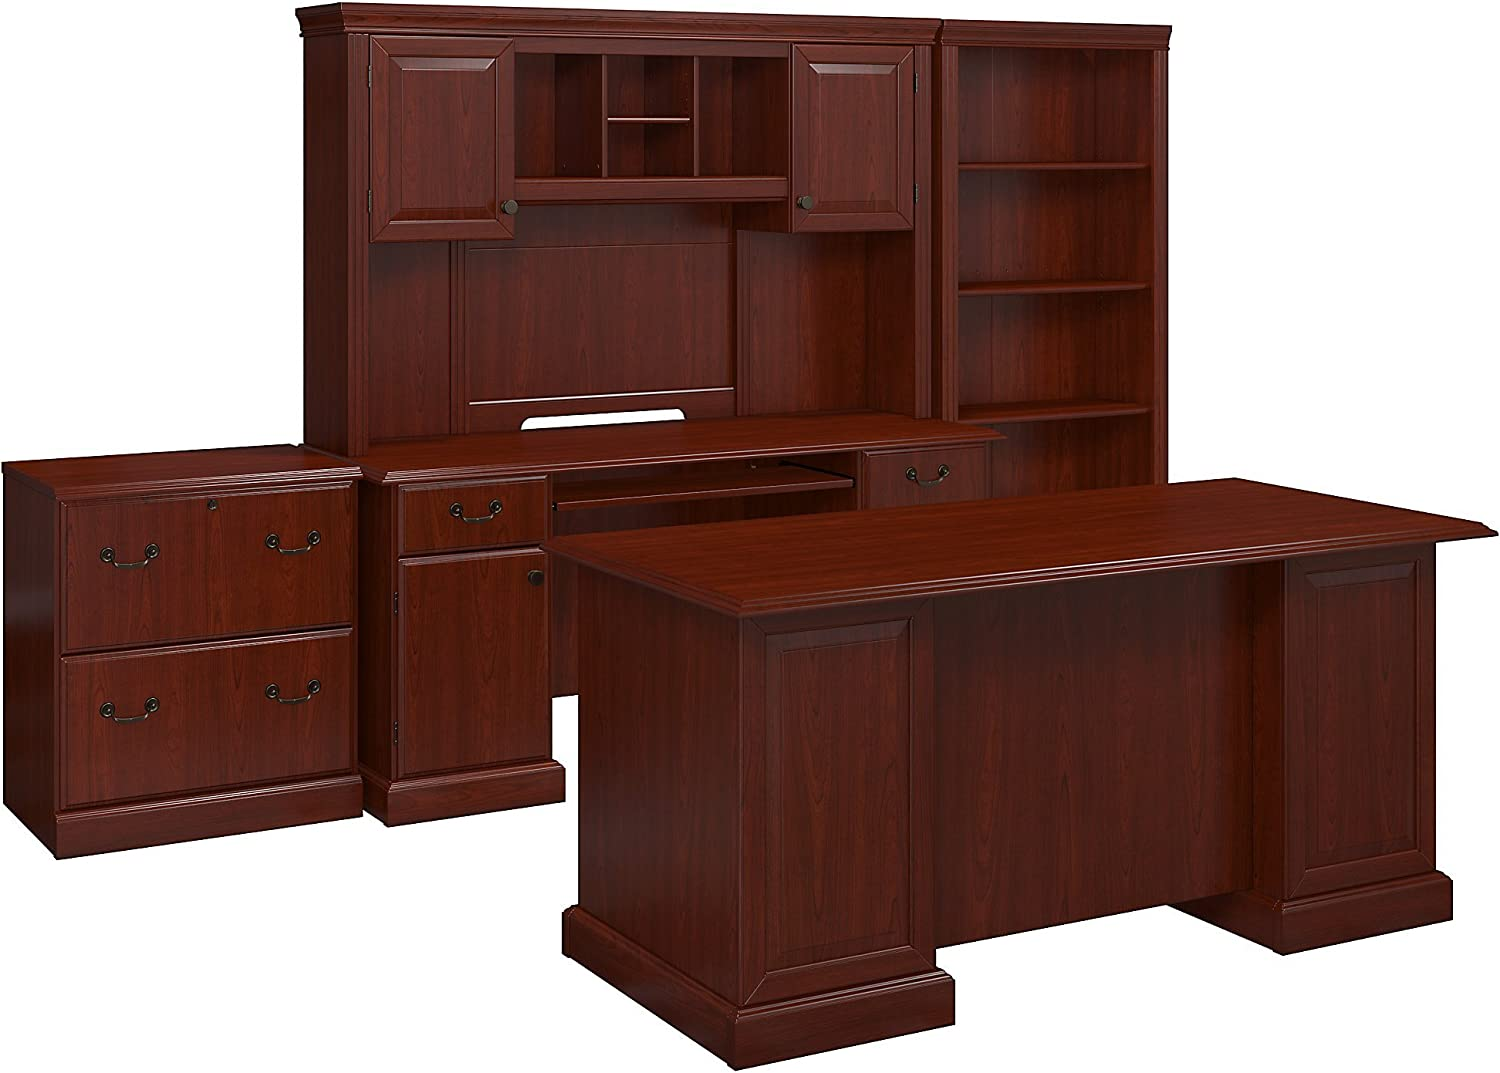 Lateral File and Bookcase in Harvest Cherry Credenza with Hutch kathy ireland Home by Bush Furniture Bennington Managers Desk